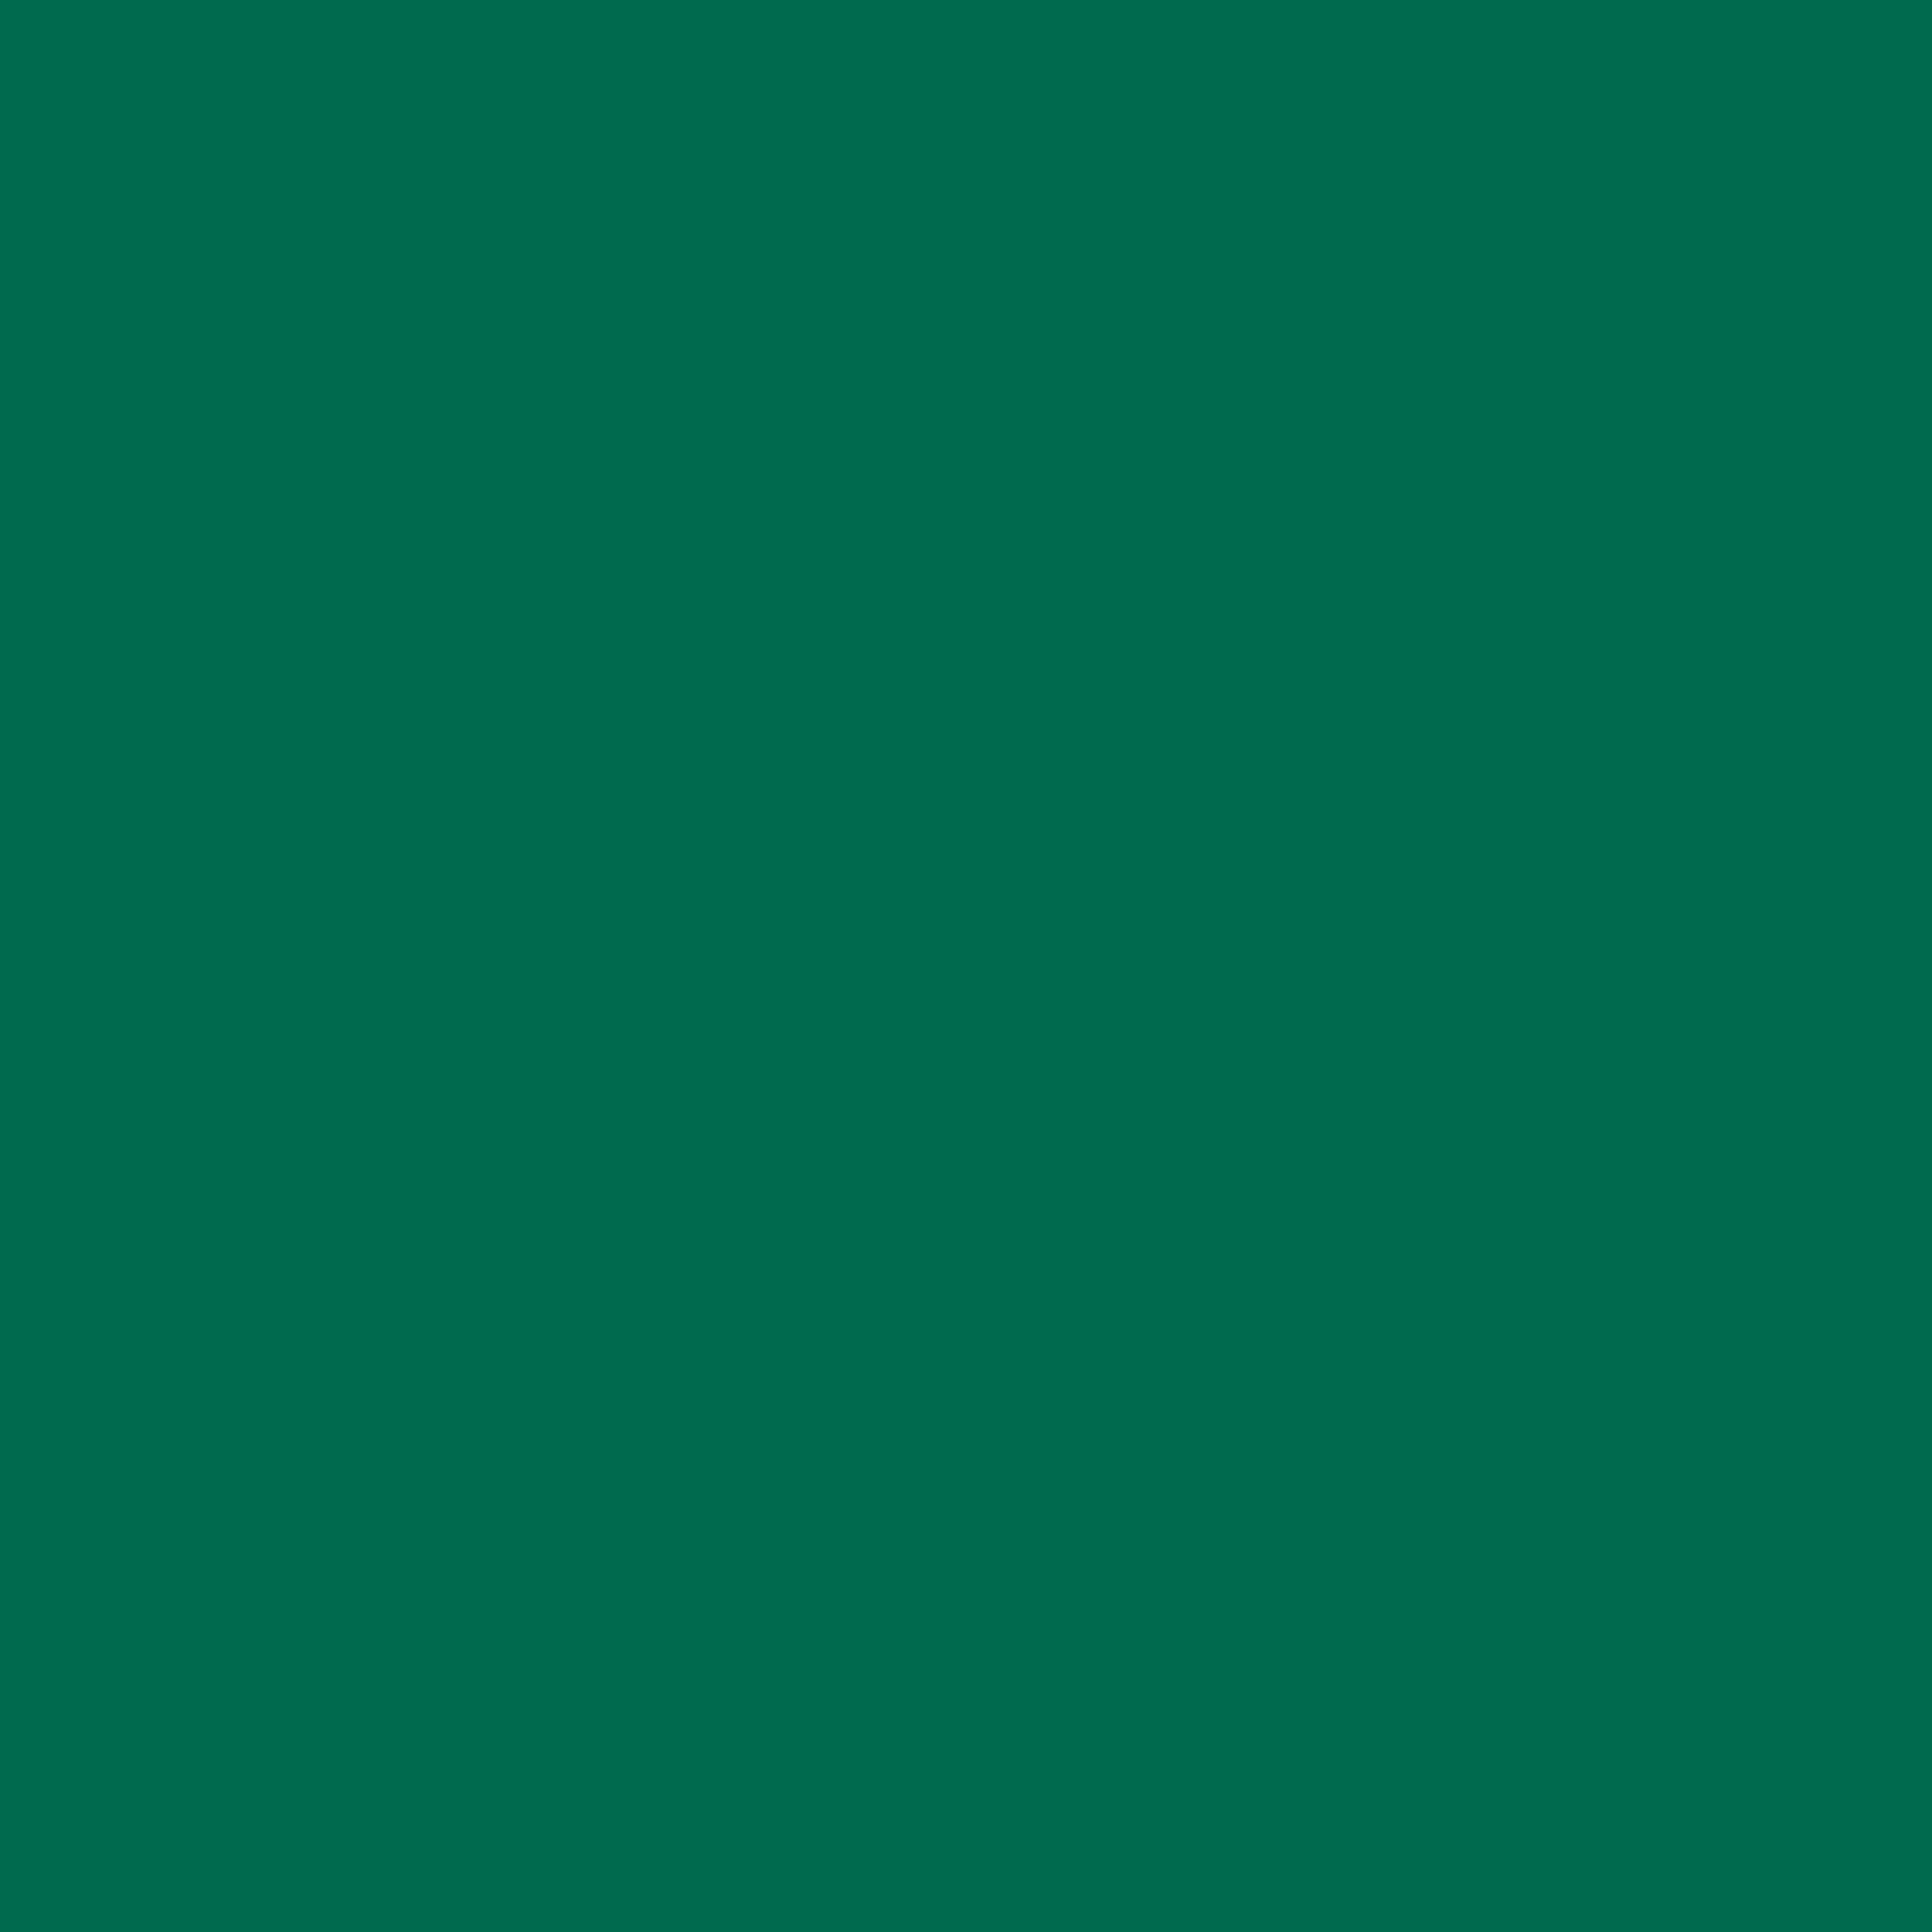 2732x2732 Bottle Green Solid Color Background